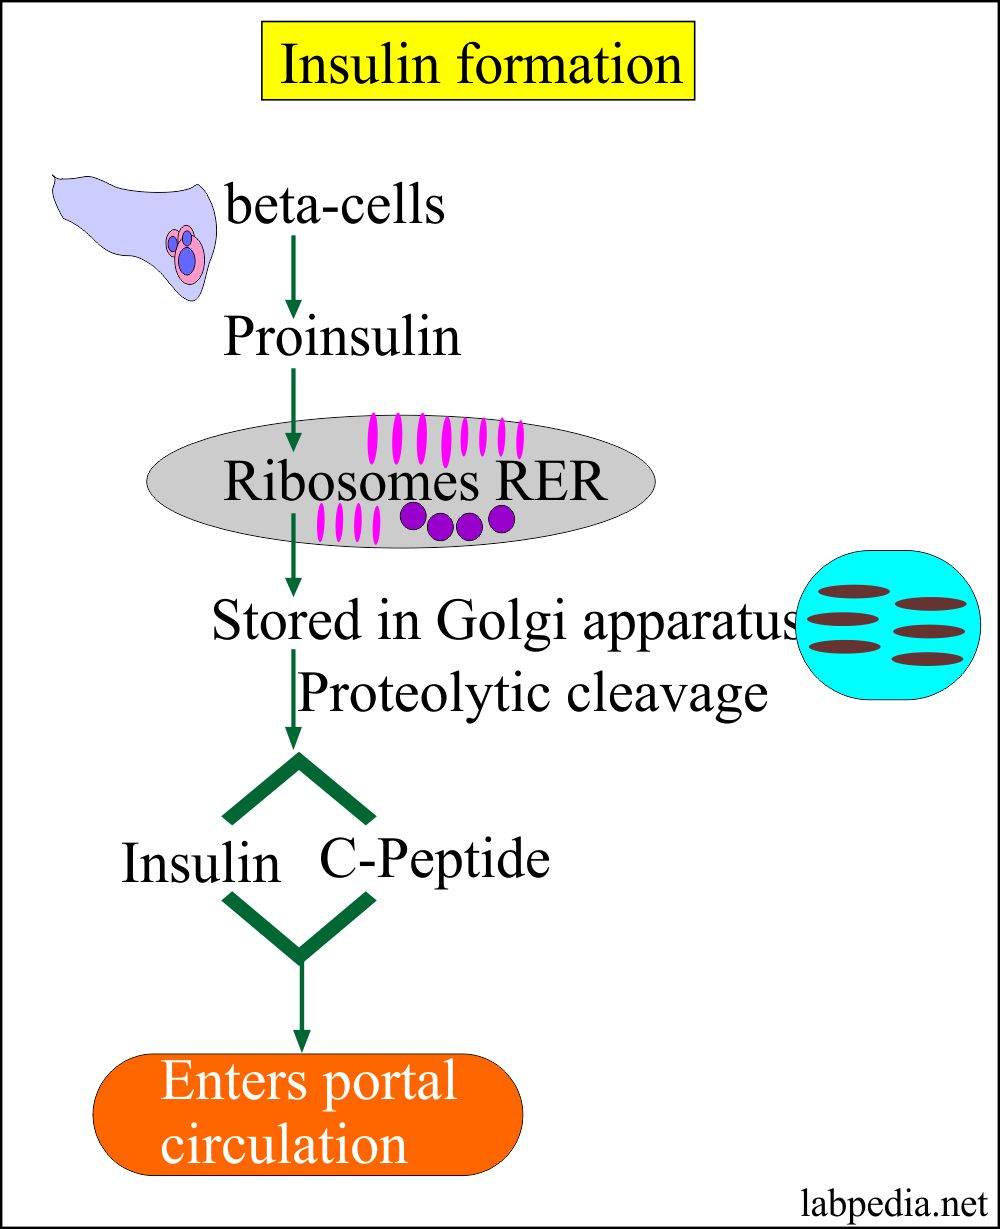 Mechanism of Insulin formation